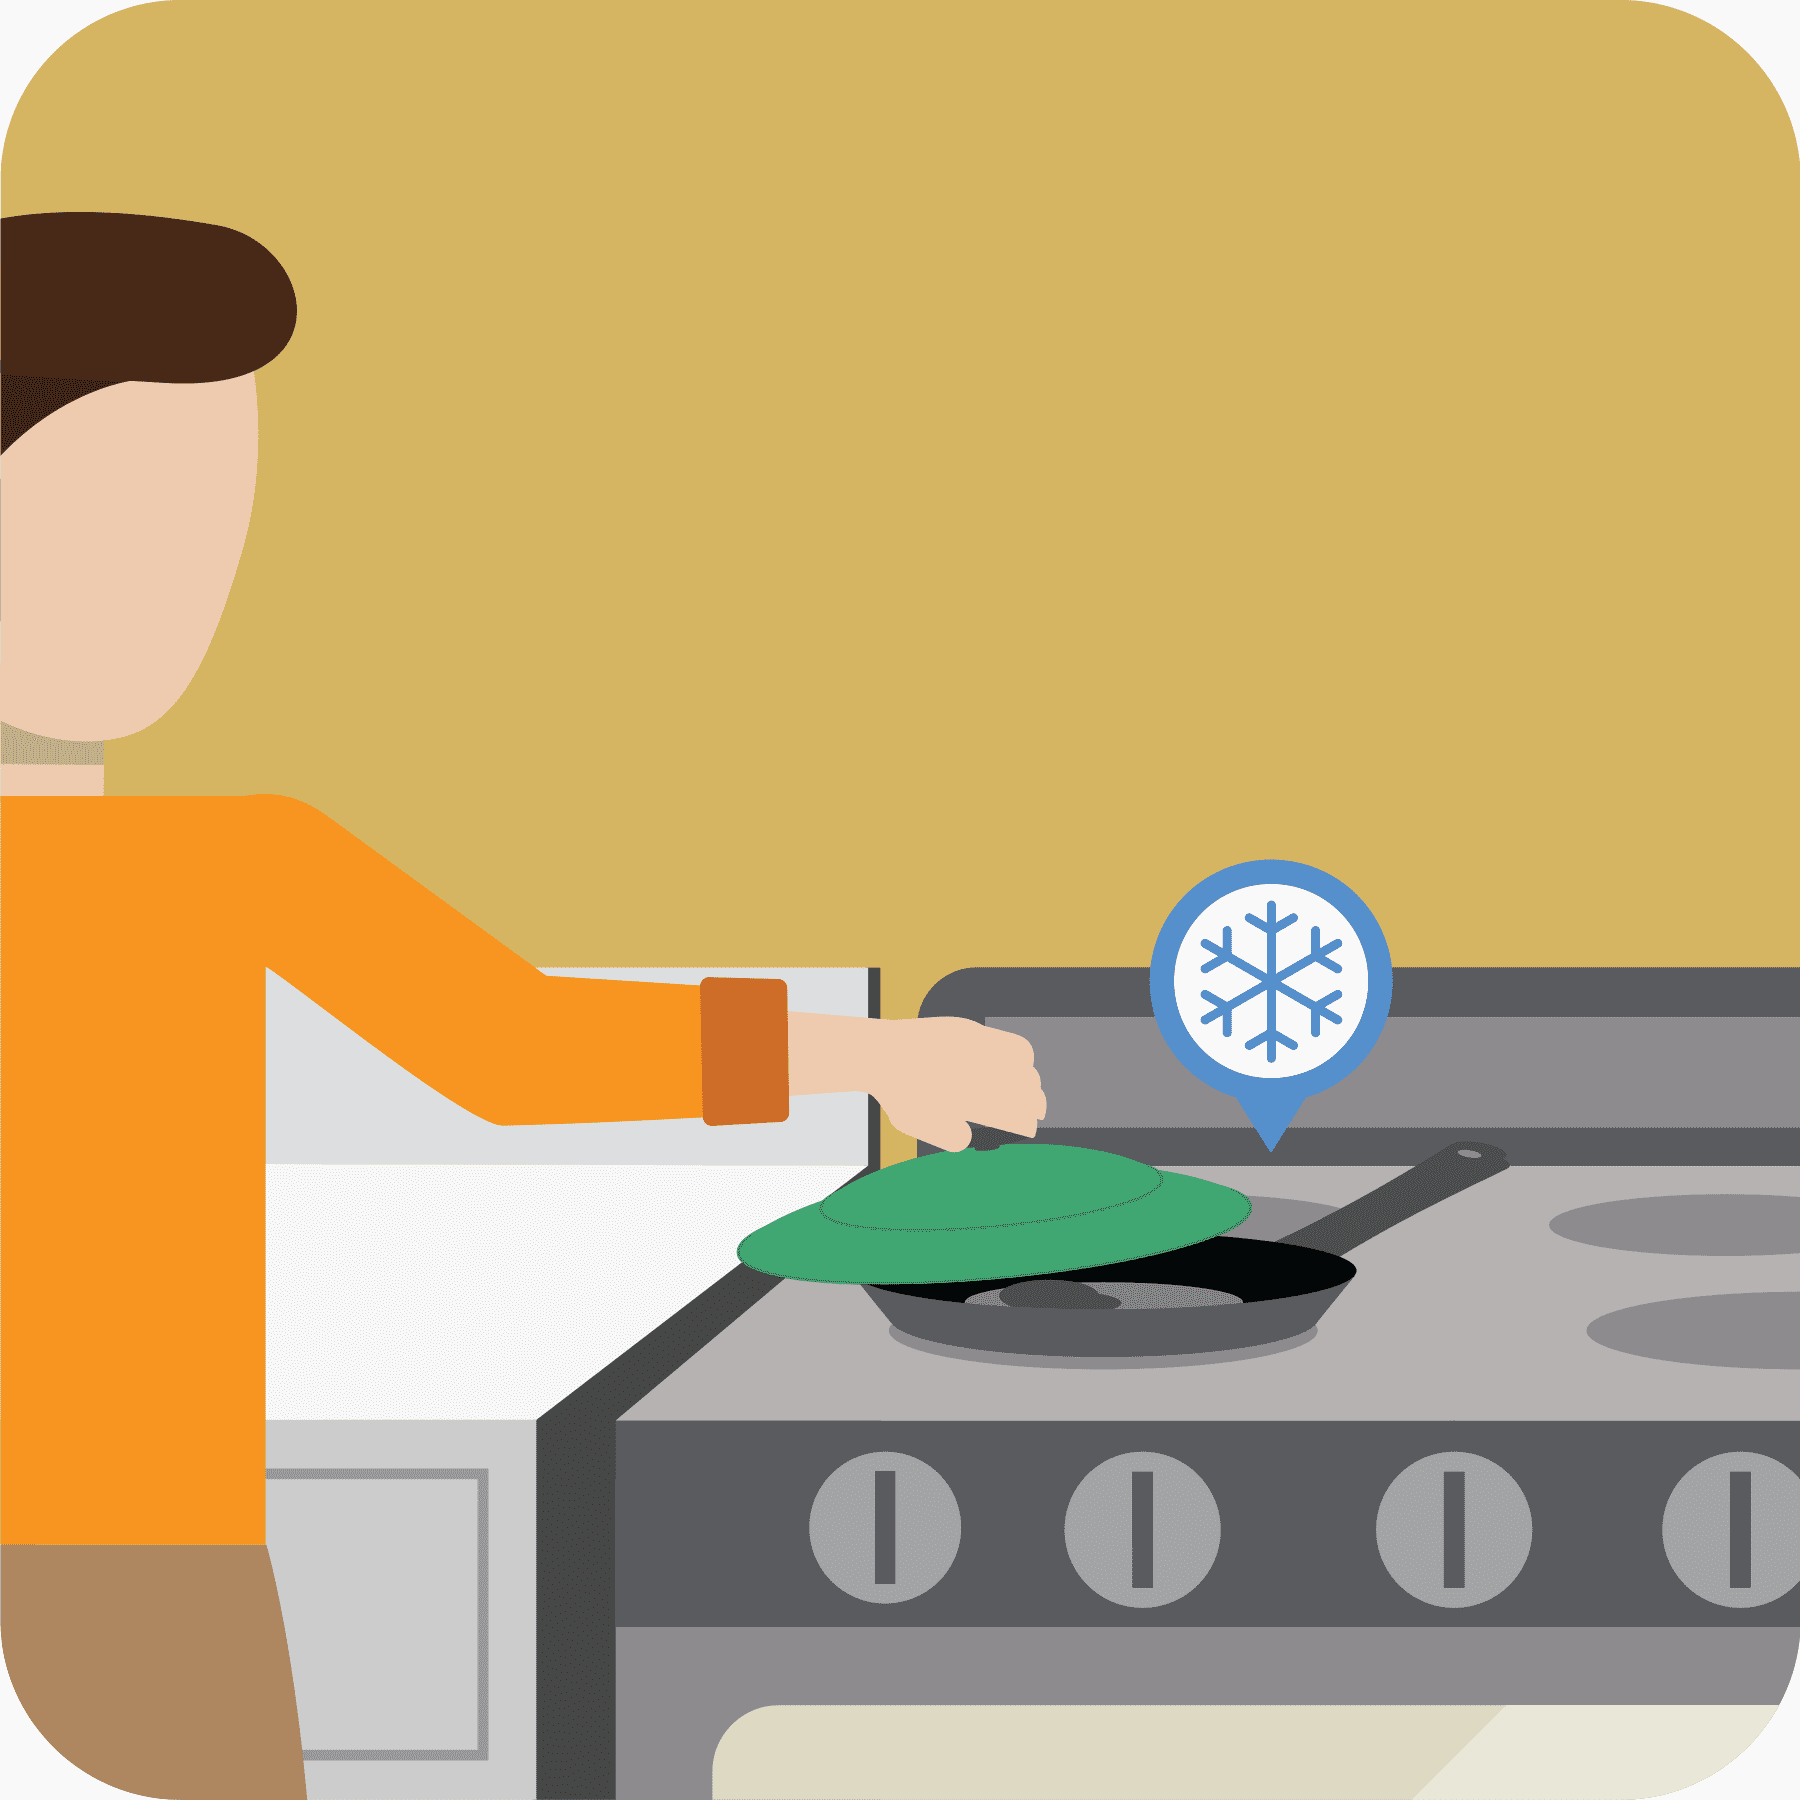 Woman lifts up lid when the pan is cool indicated by a snowflake above the pan.